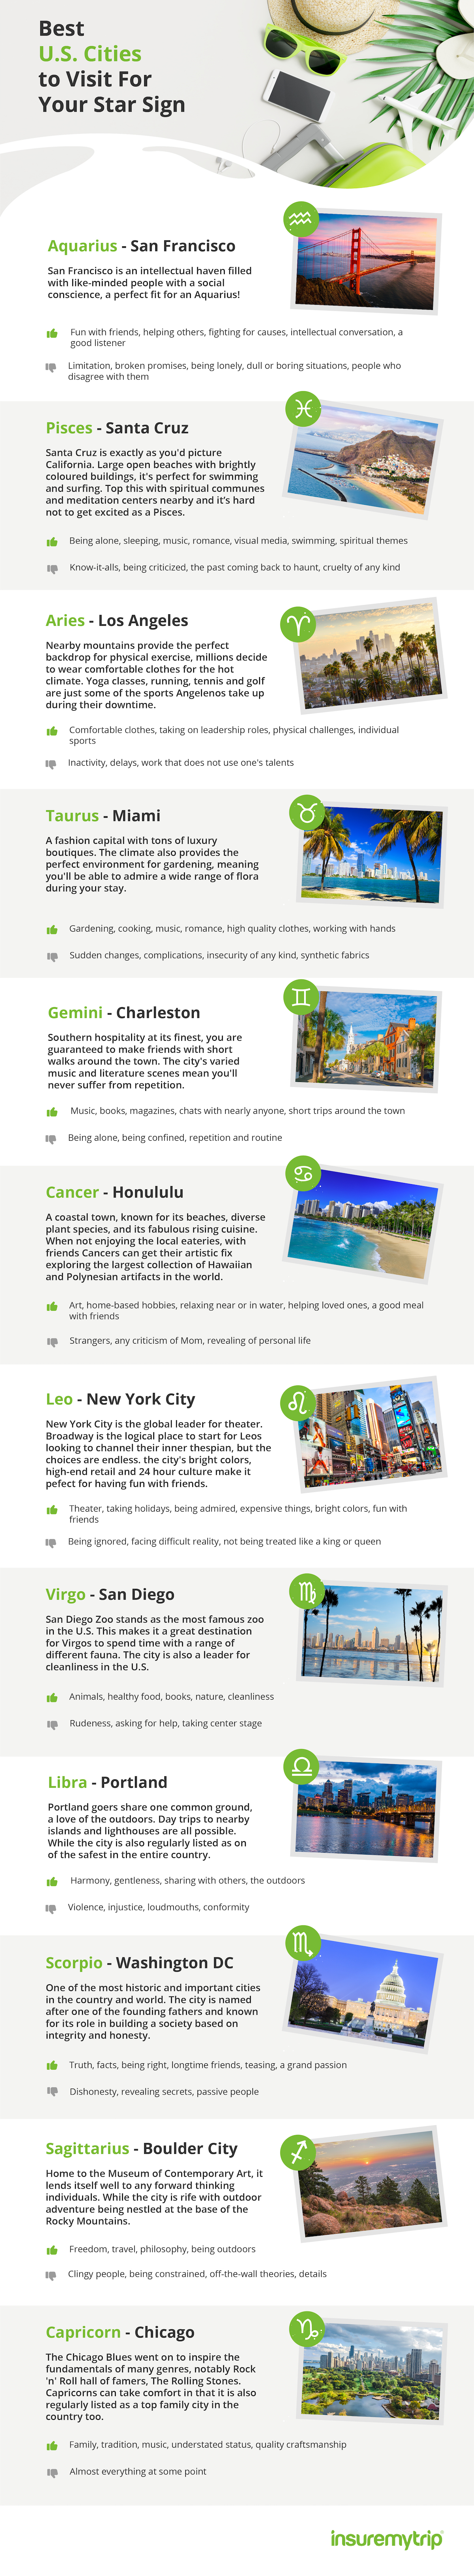 Best Domestic U.S. Cities to Visit Based on Zodiac Star Sign